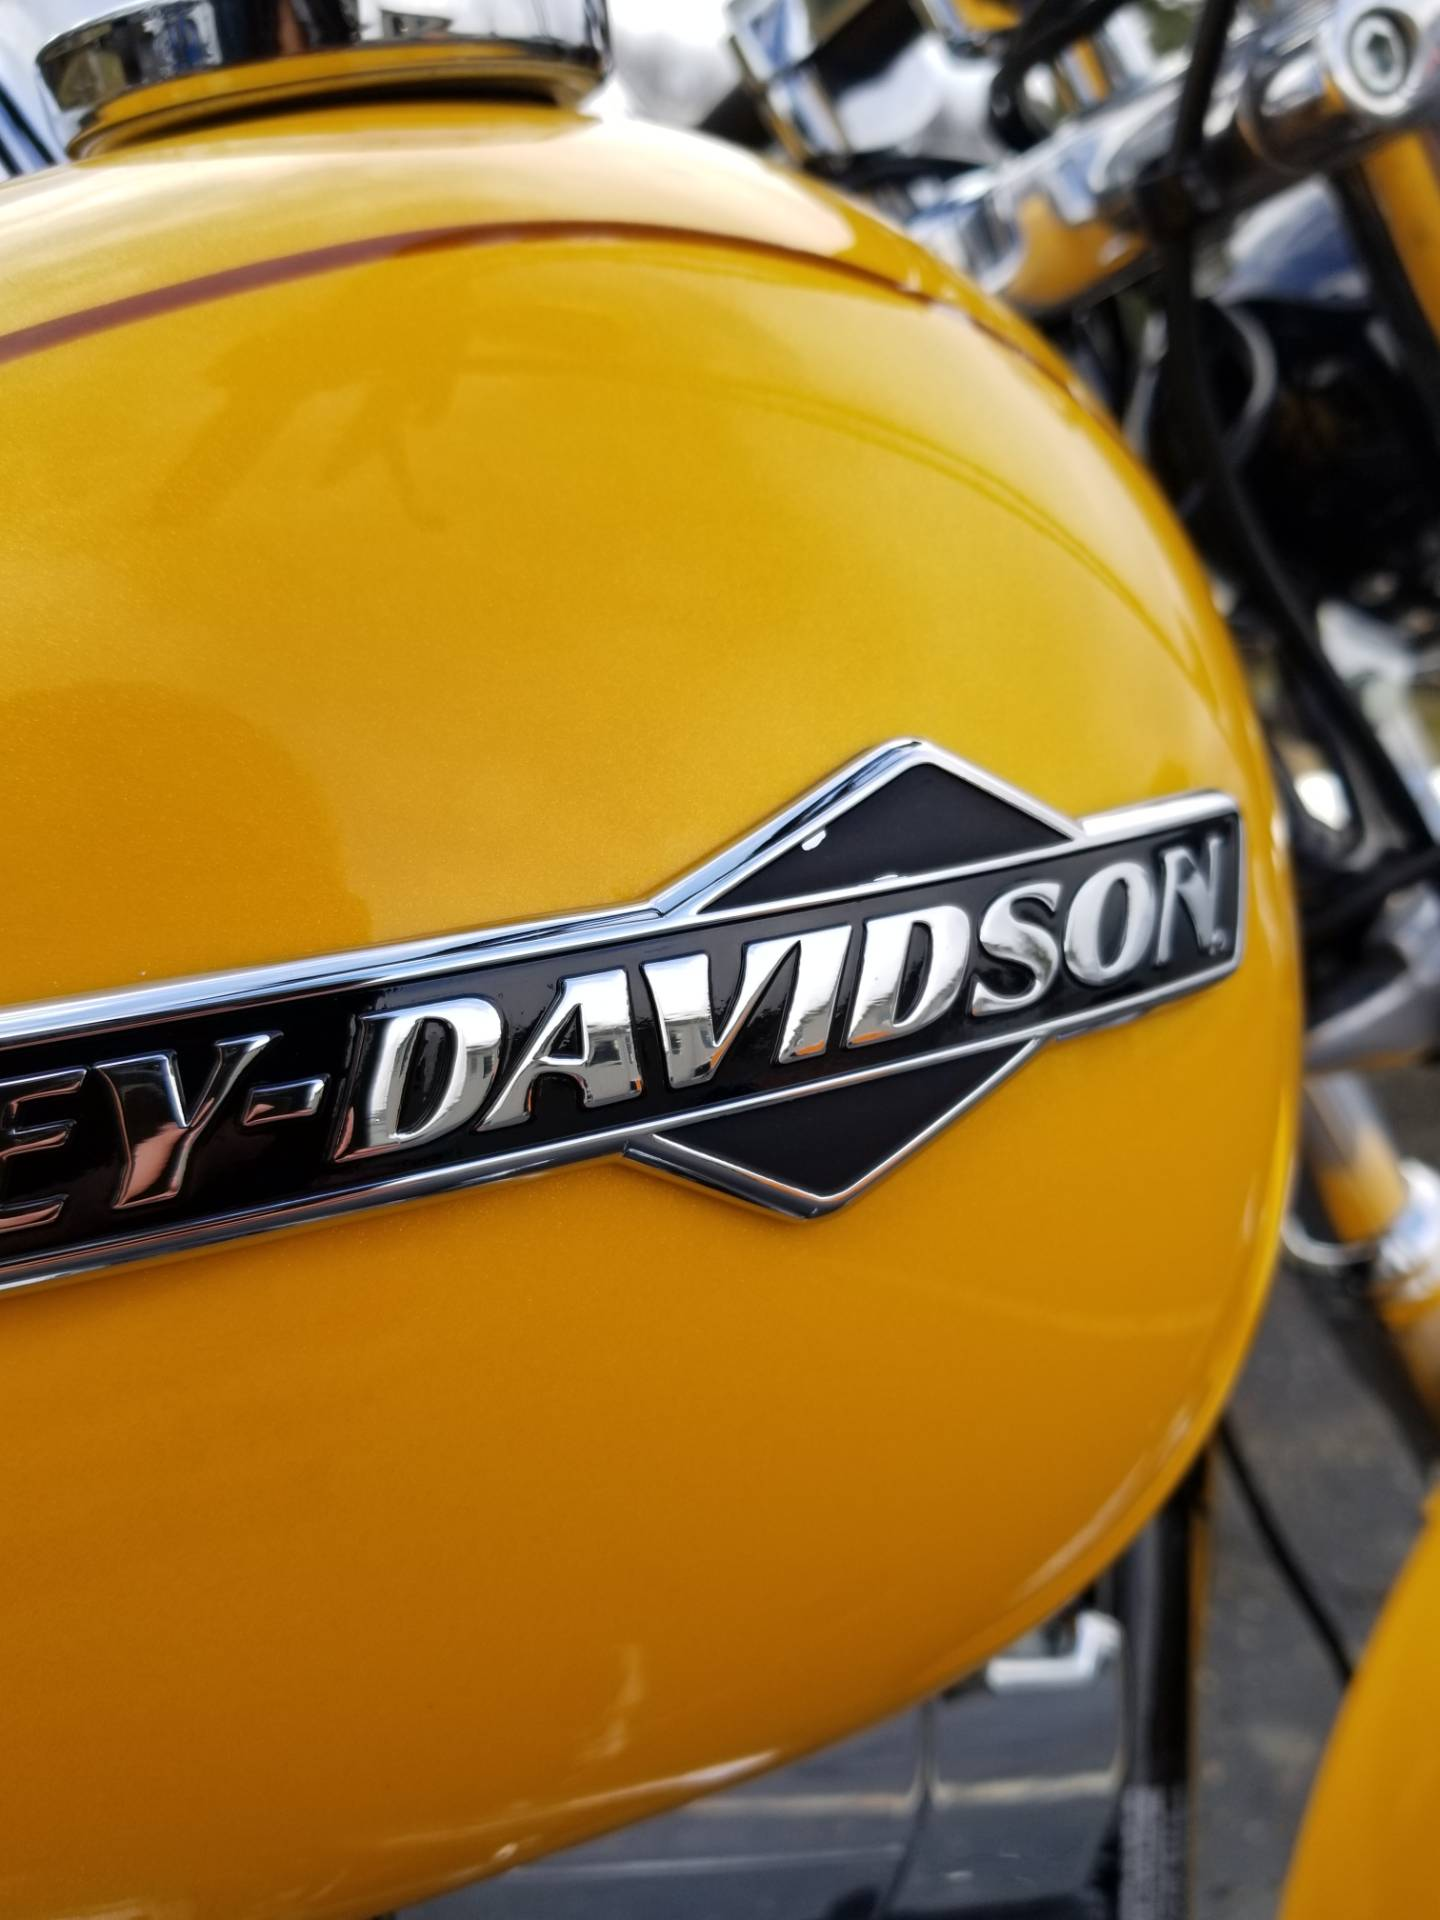 2013 Harley-Davidson Dyna® Super Glide® Custom in Sunbury, Ohio - Photo 32